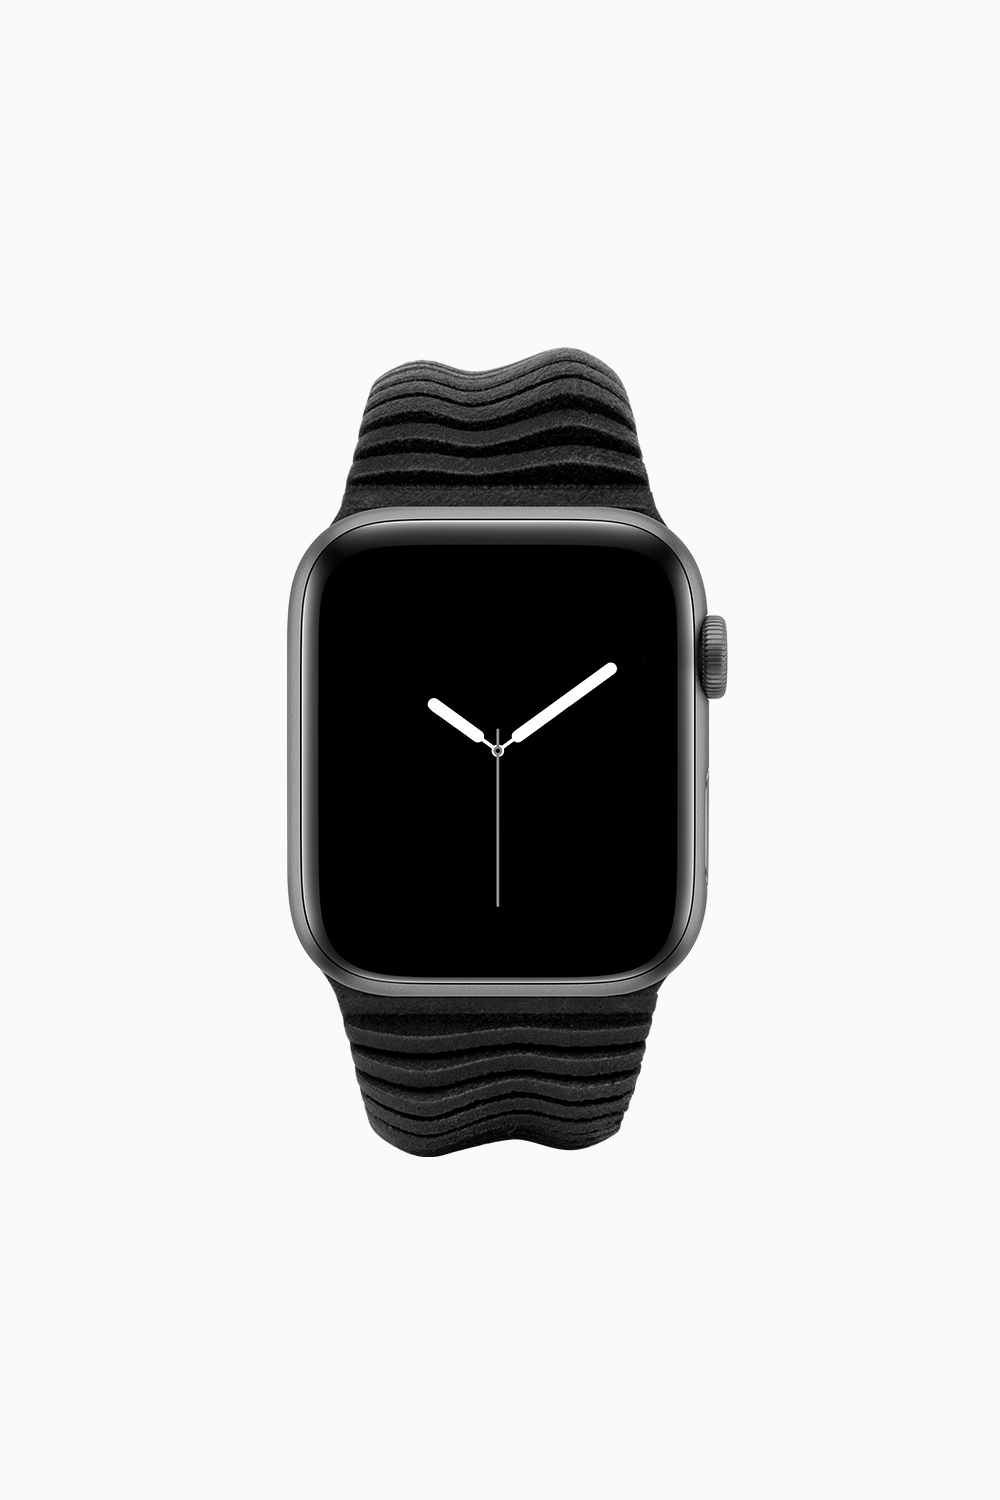 Pulse Apple Watch Band, Design by Matthijs Kok for Freshfiber